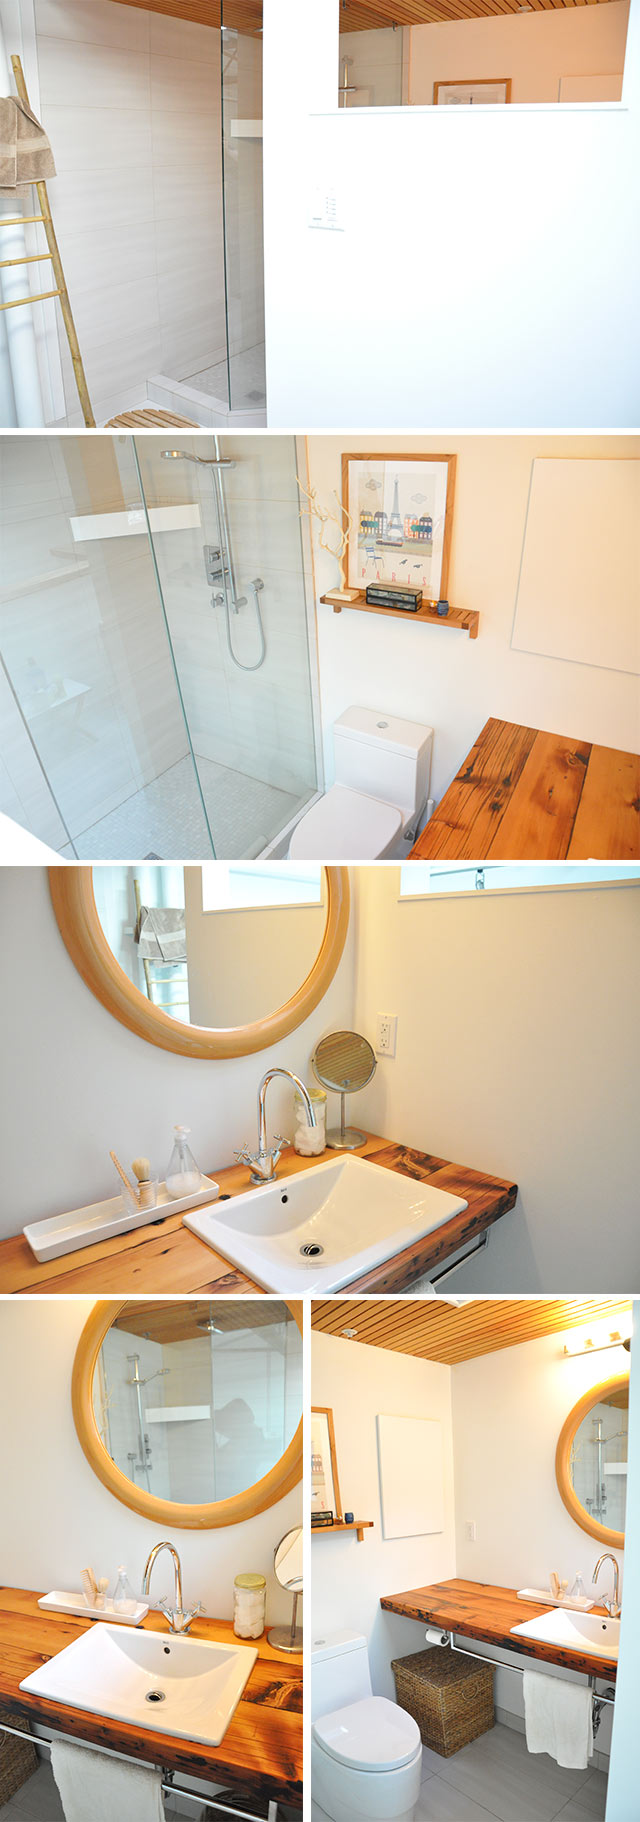 Upstairs Bathroom - After